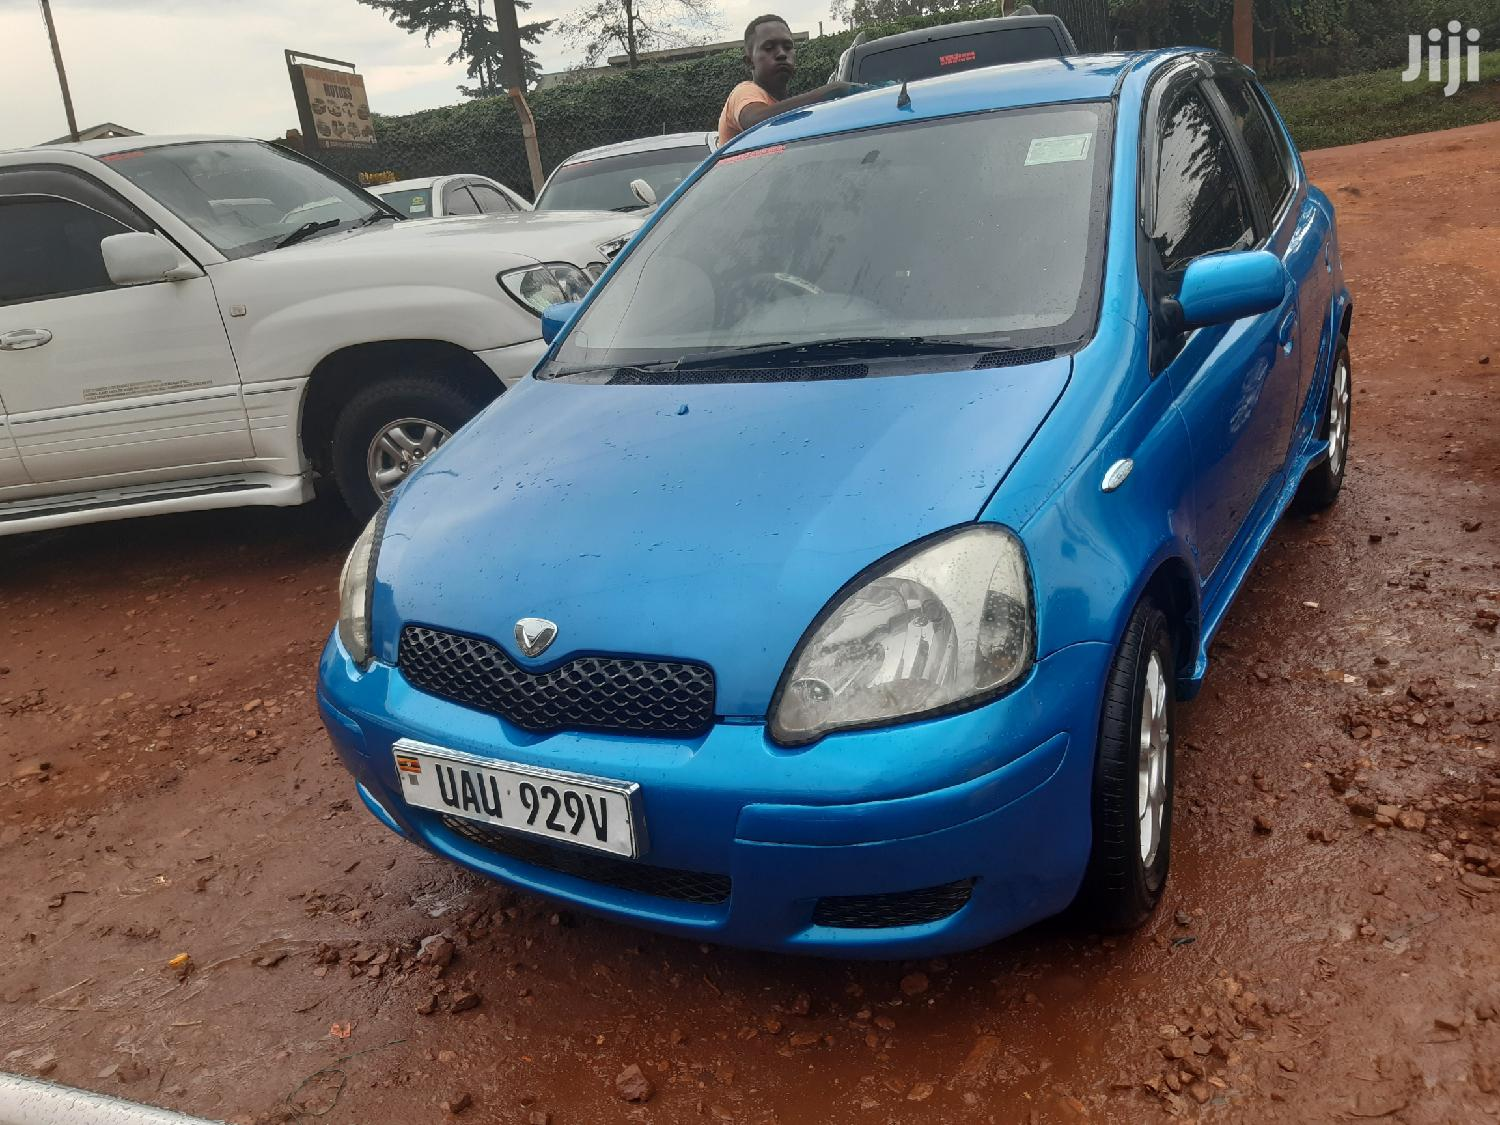 Toyota Vitz 2005 Blue | Cars for sale in Kampala, Central Region, Uganda